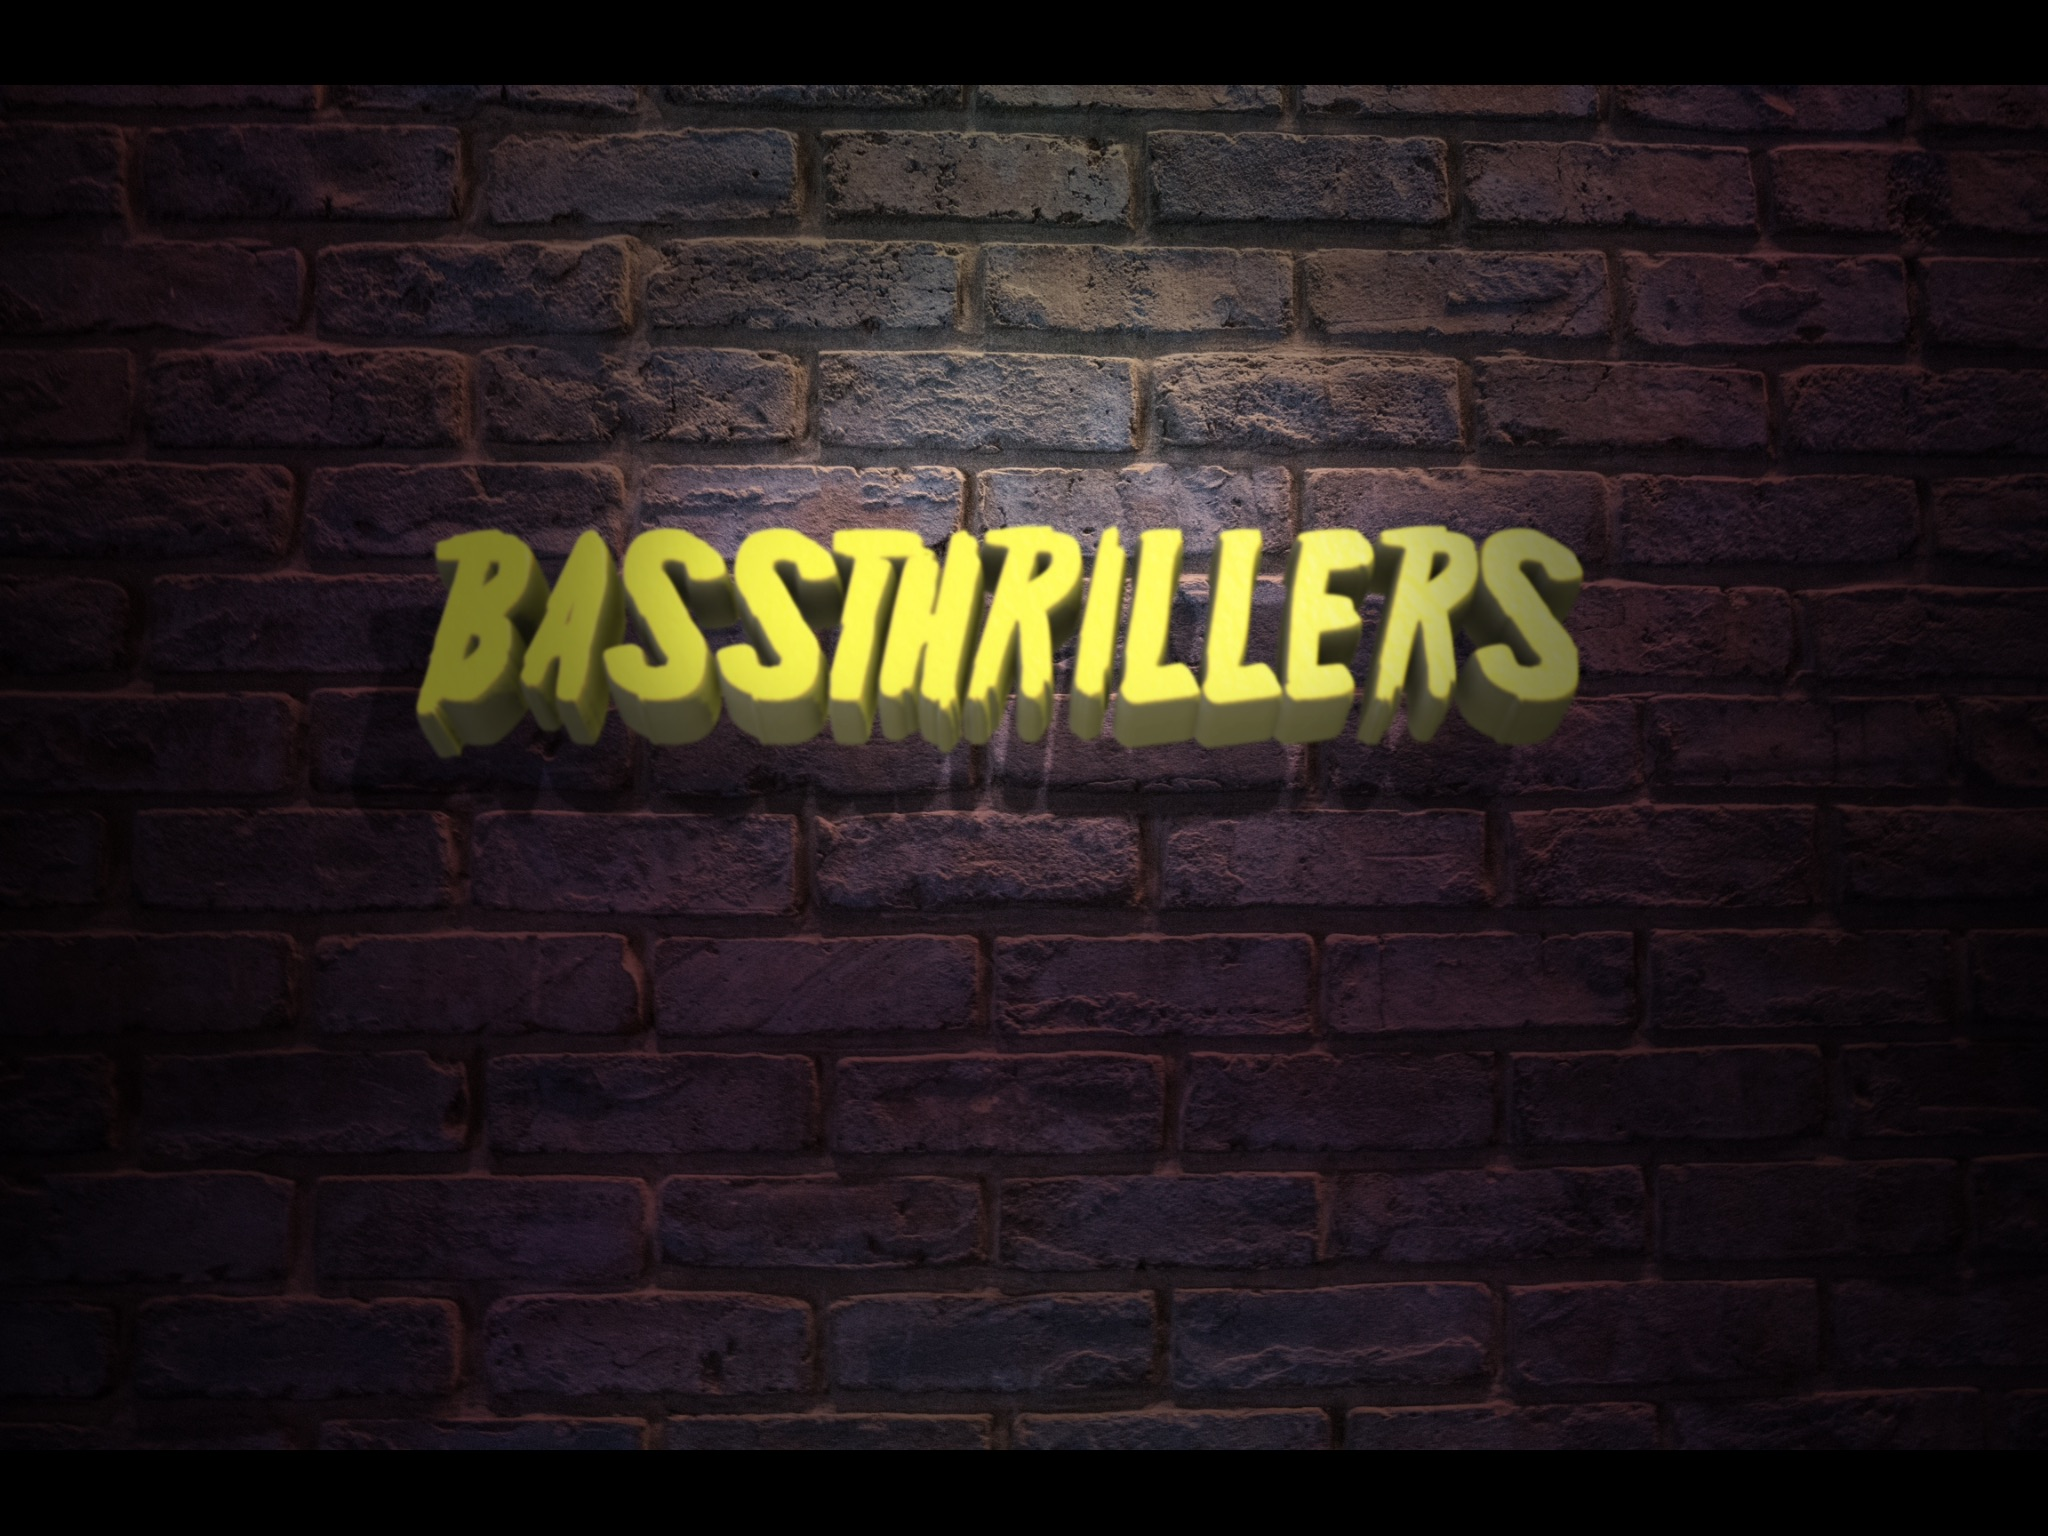 @BassThrillers